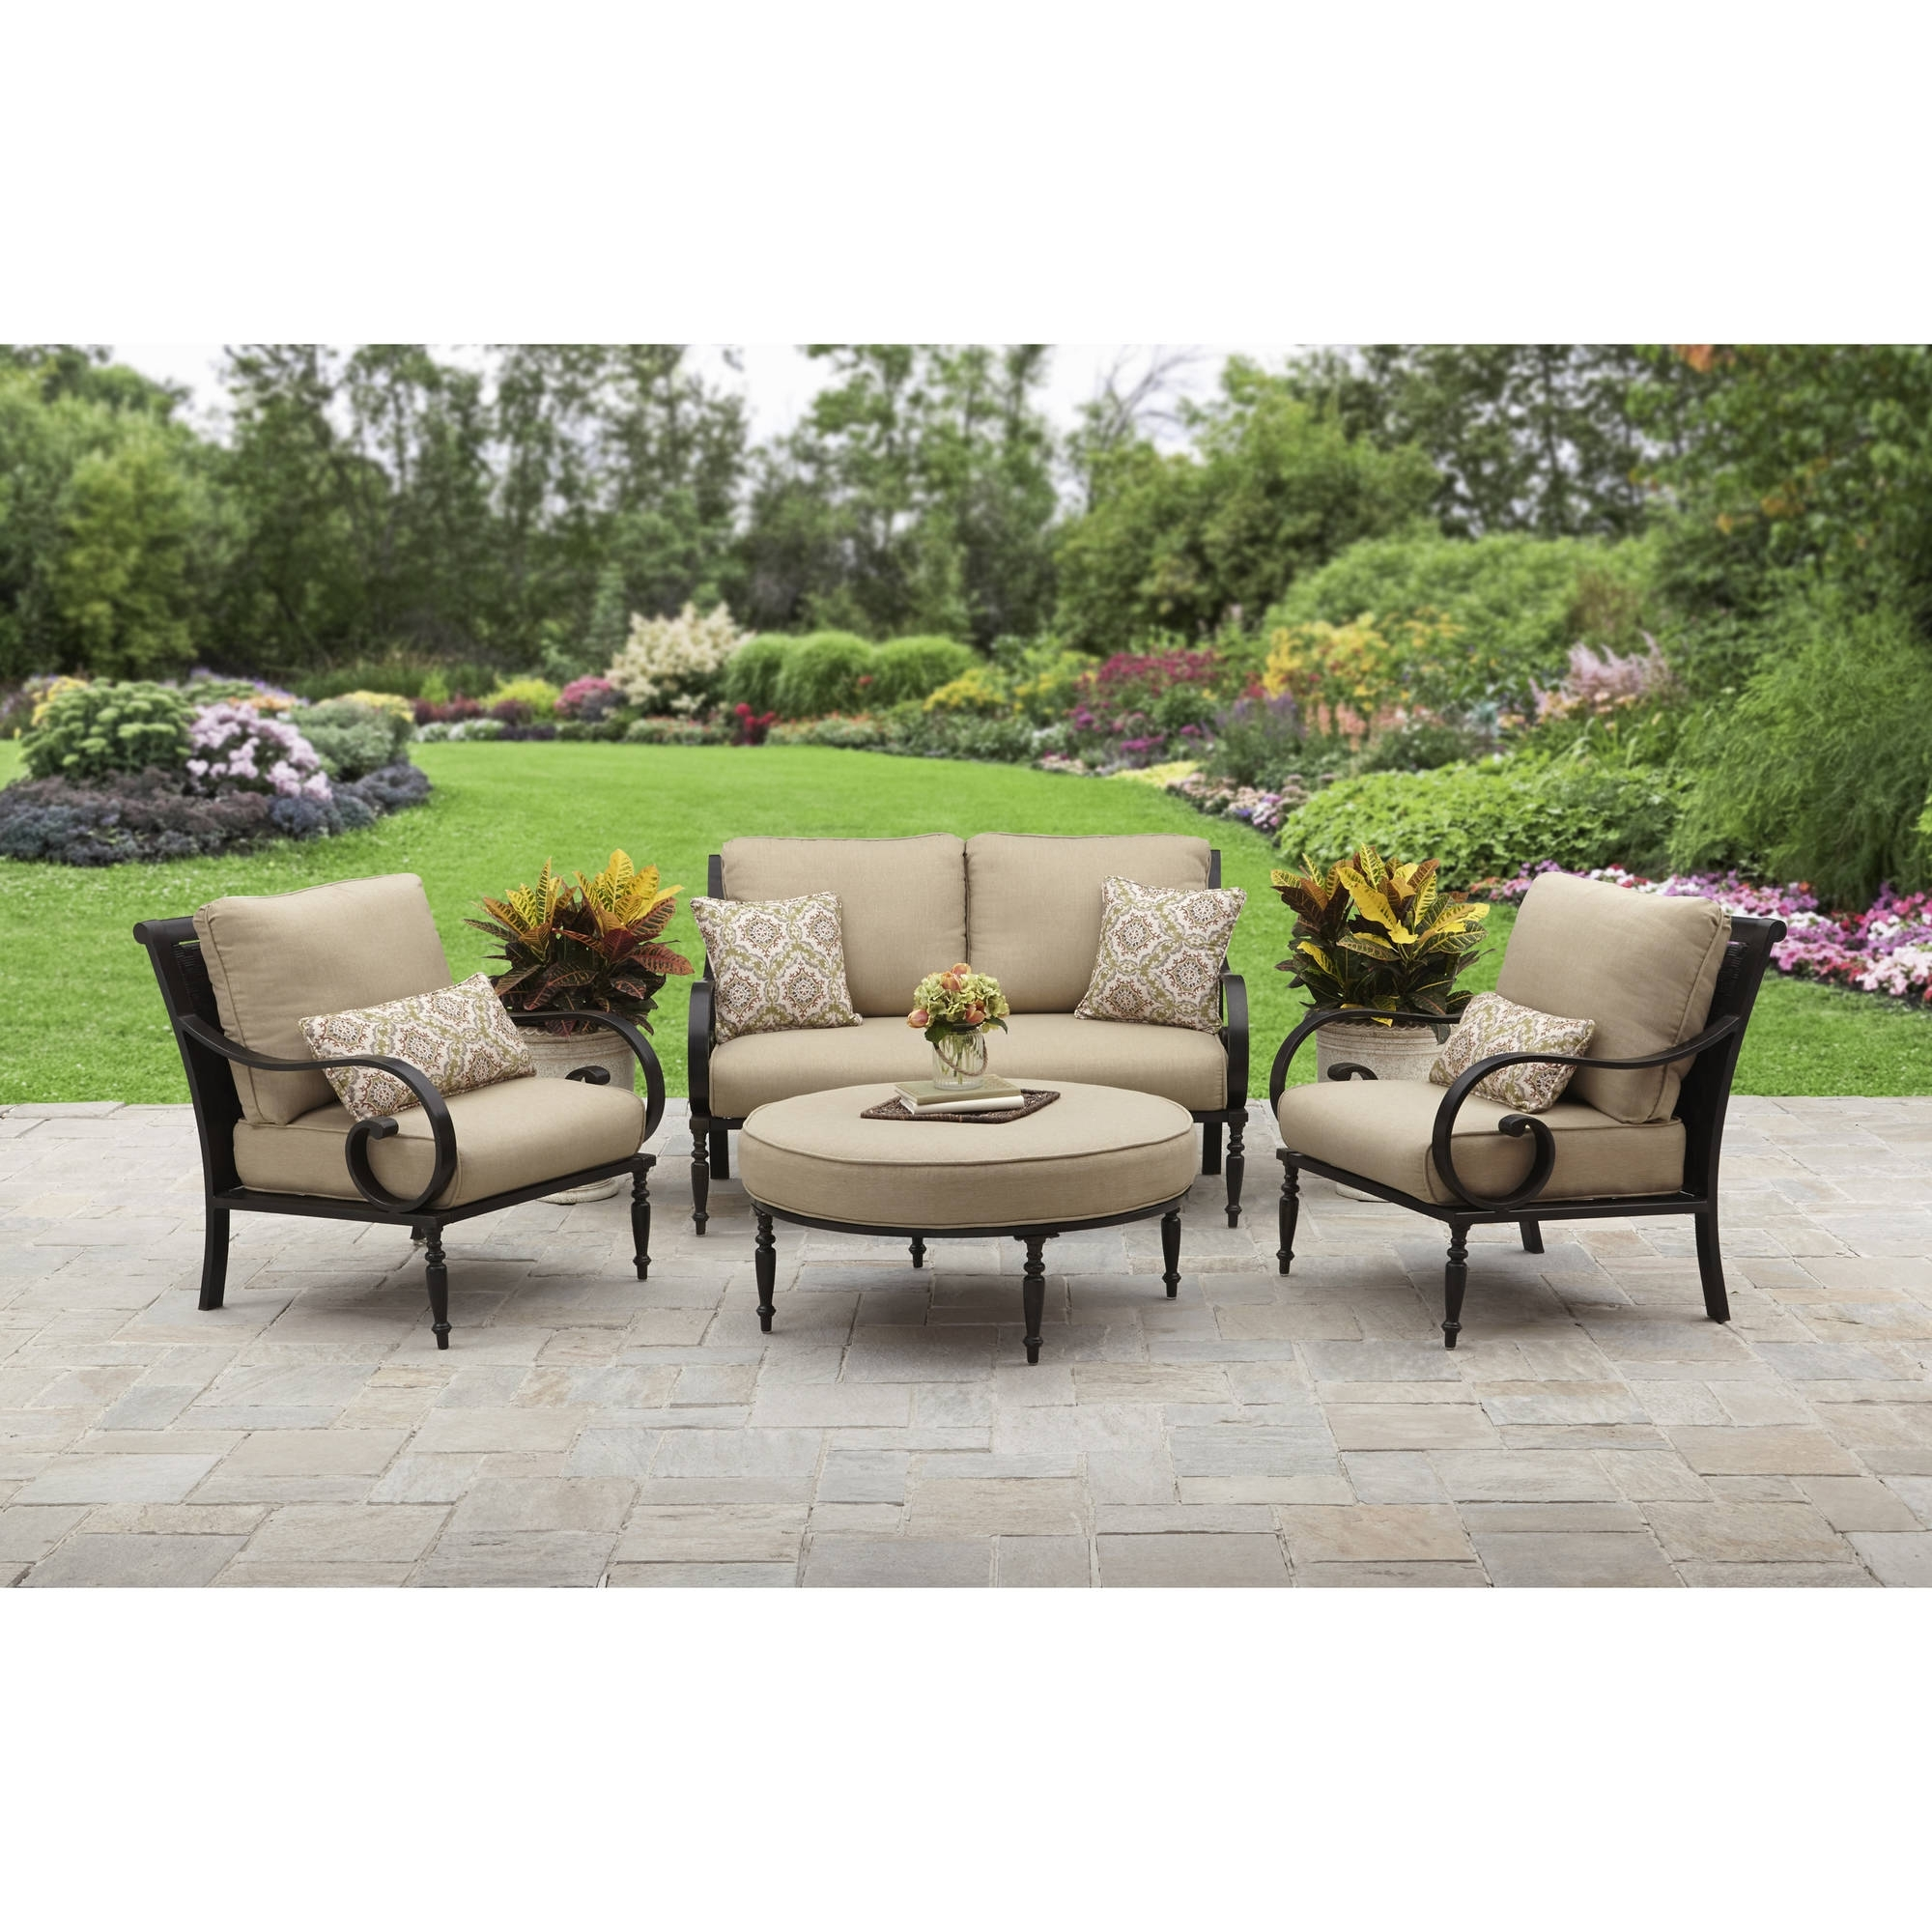 Better Homes And Gardens Englewood Heights Ii Aluminum 4 Piece Intended For Preferred Aluminum Patio Conversation Sets (View 5 of 20)